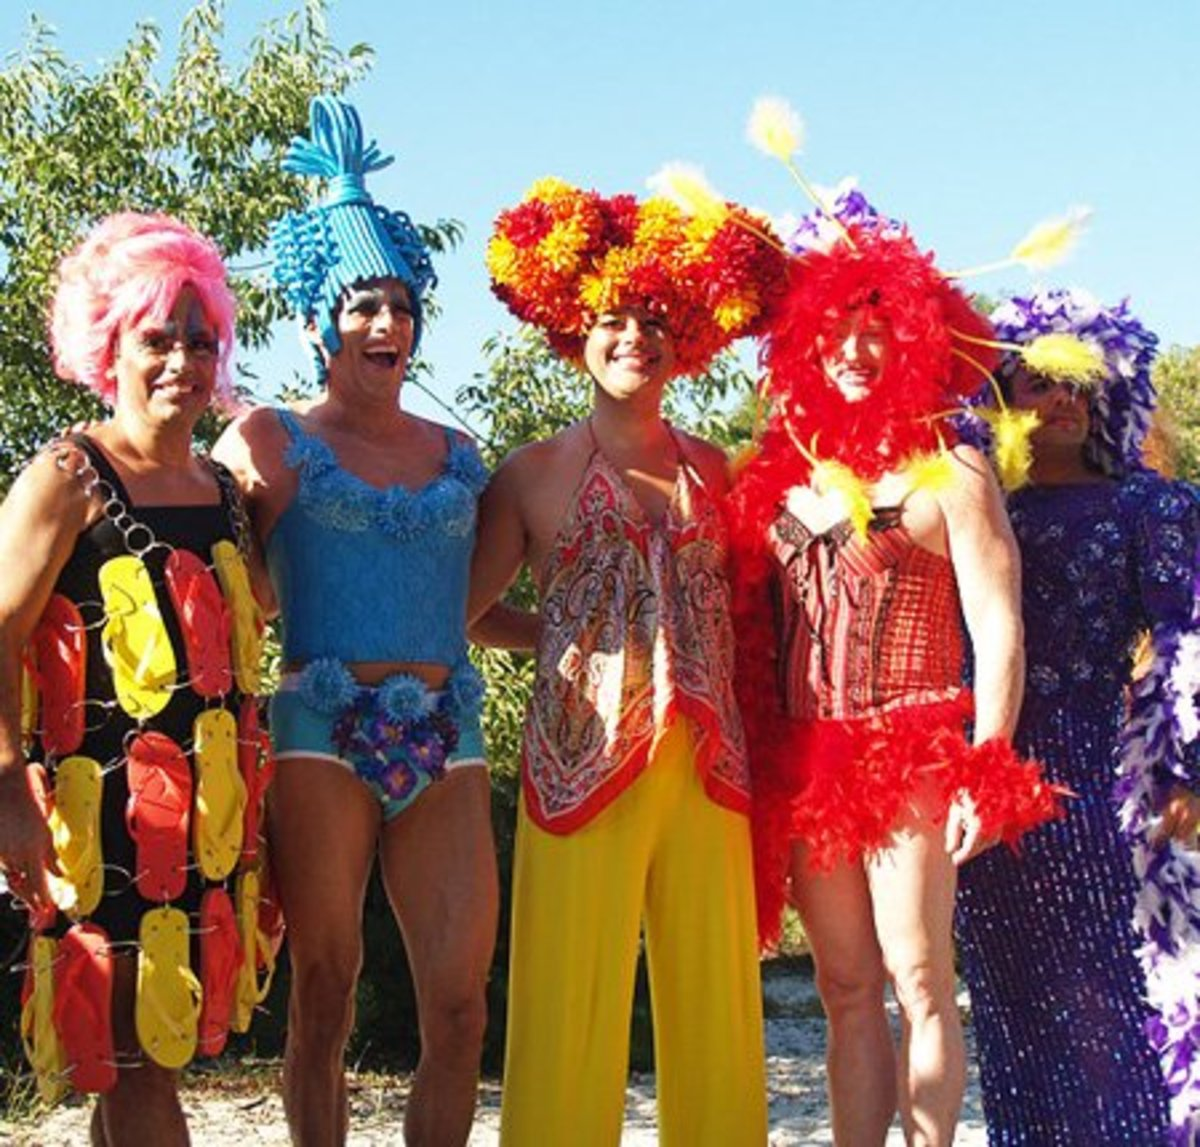 Priscilla Queen of the Desert Group Costume